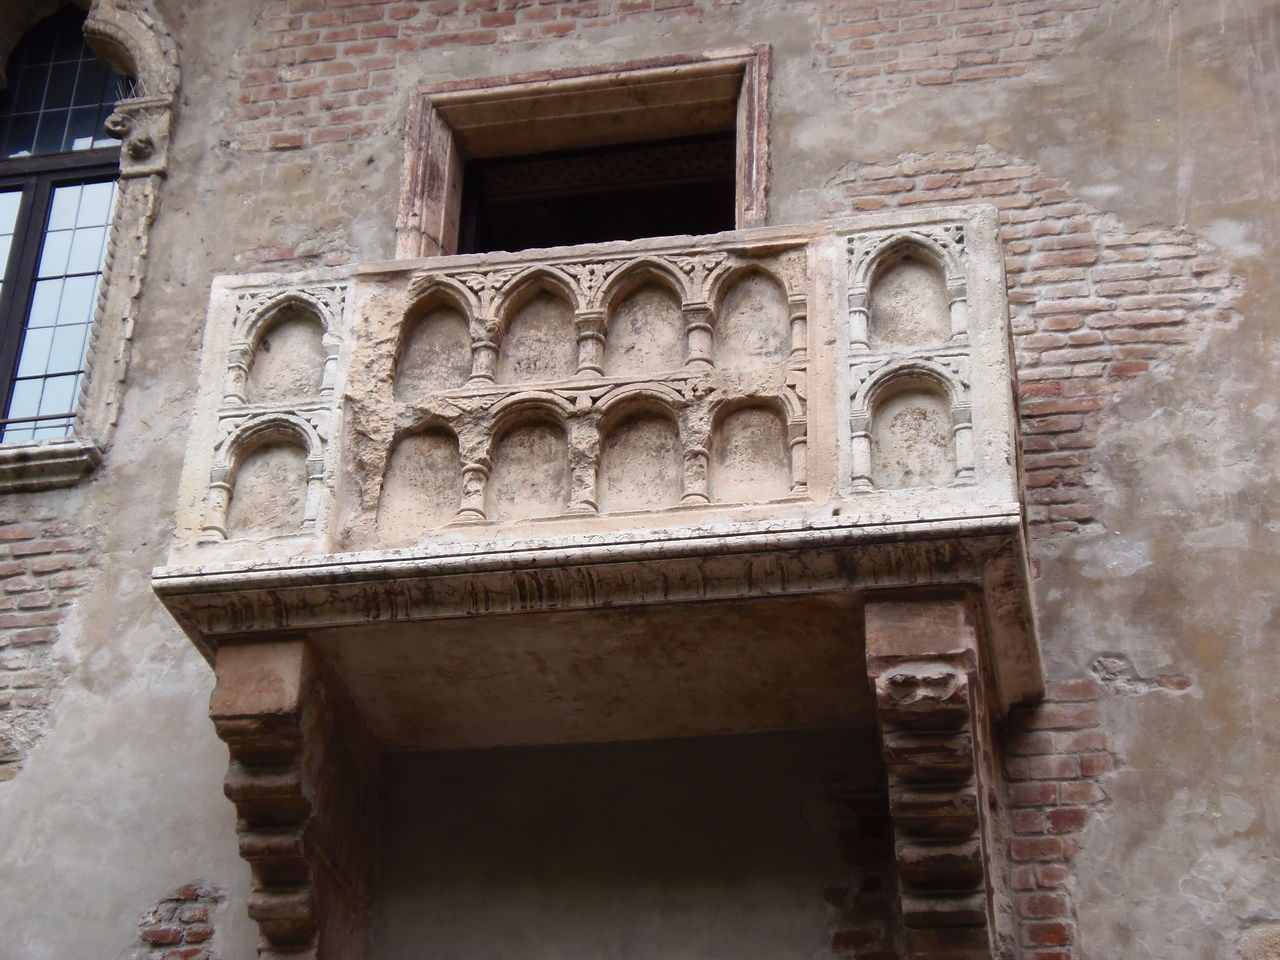 Architecture Building Exterior Historic Window Travel Photography Balcony Shot Balcony View RomeoYJulieta Romeo&juliet Balconyview Romeo E Giulietta Romeo And Juliet's Balcony Romeoandjuliet Romeo And Juliet Juliet's Balcony Juliethouse Juliet And Romeo Juliet's House Juliet Balcony Verona In Love Verona Italy Verona EyeEm Best Shots - Architecture Italian Style Italy Vacation